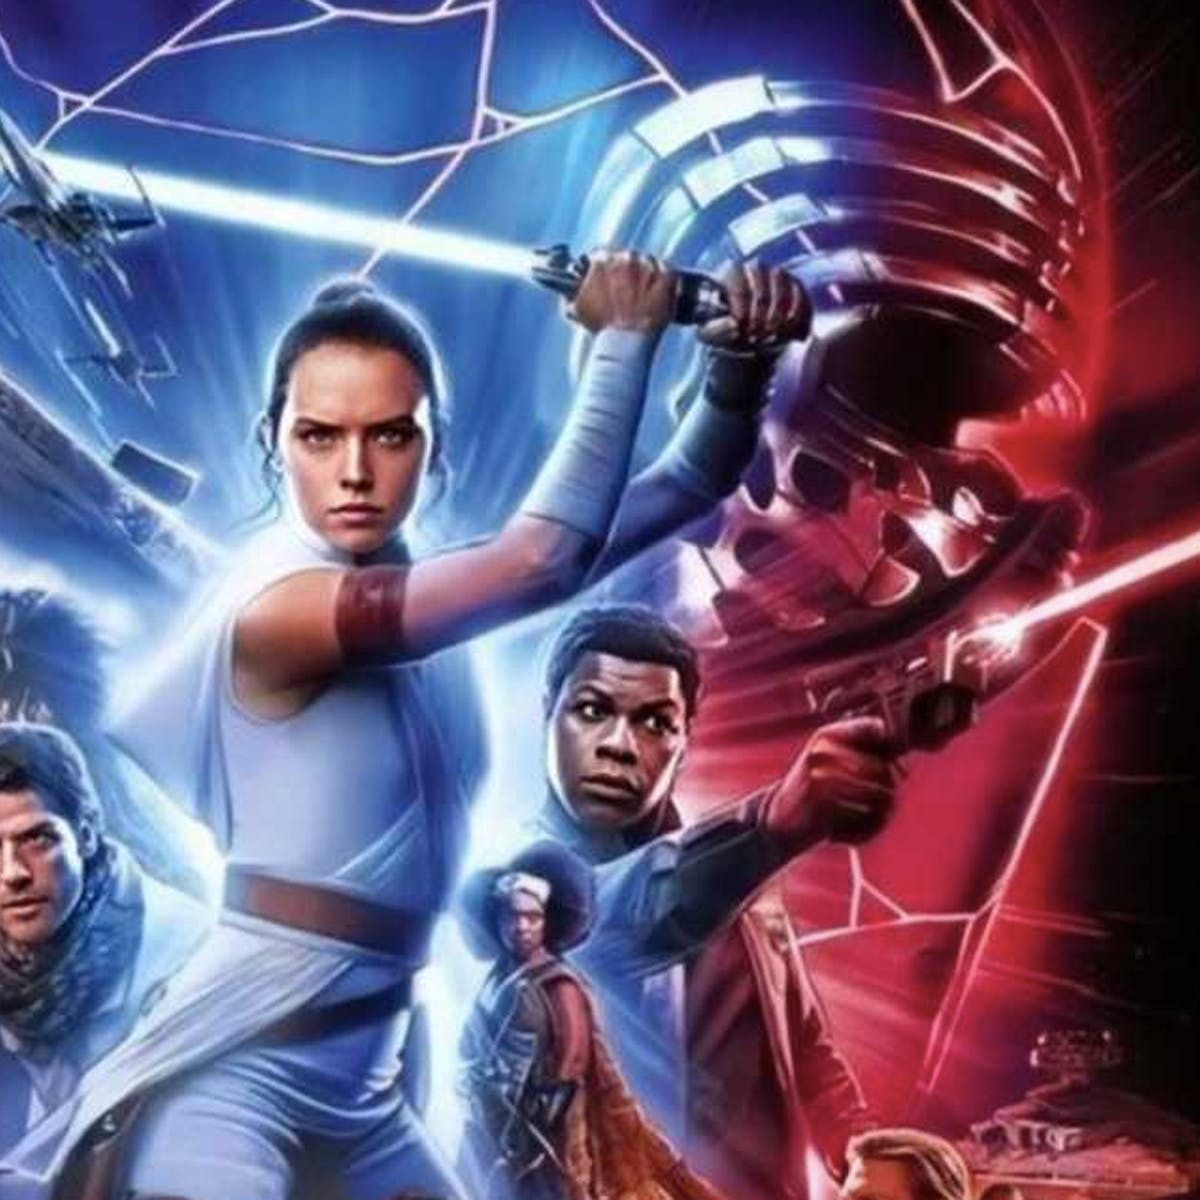 The return of an iconic song may tease prequel cameos in 'Rise of Skywalker'